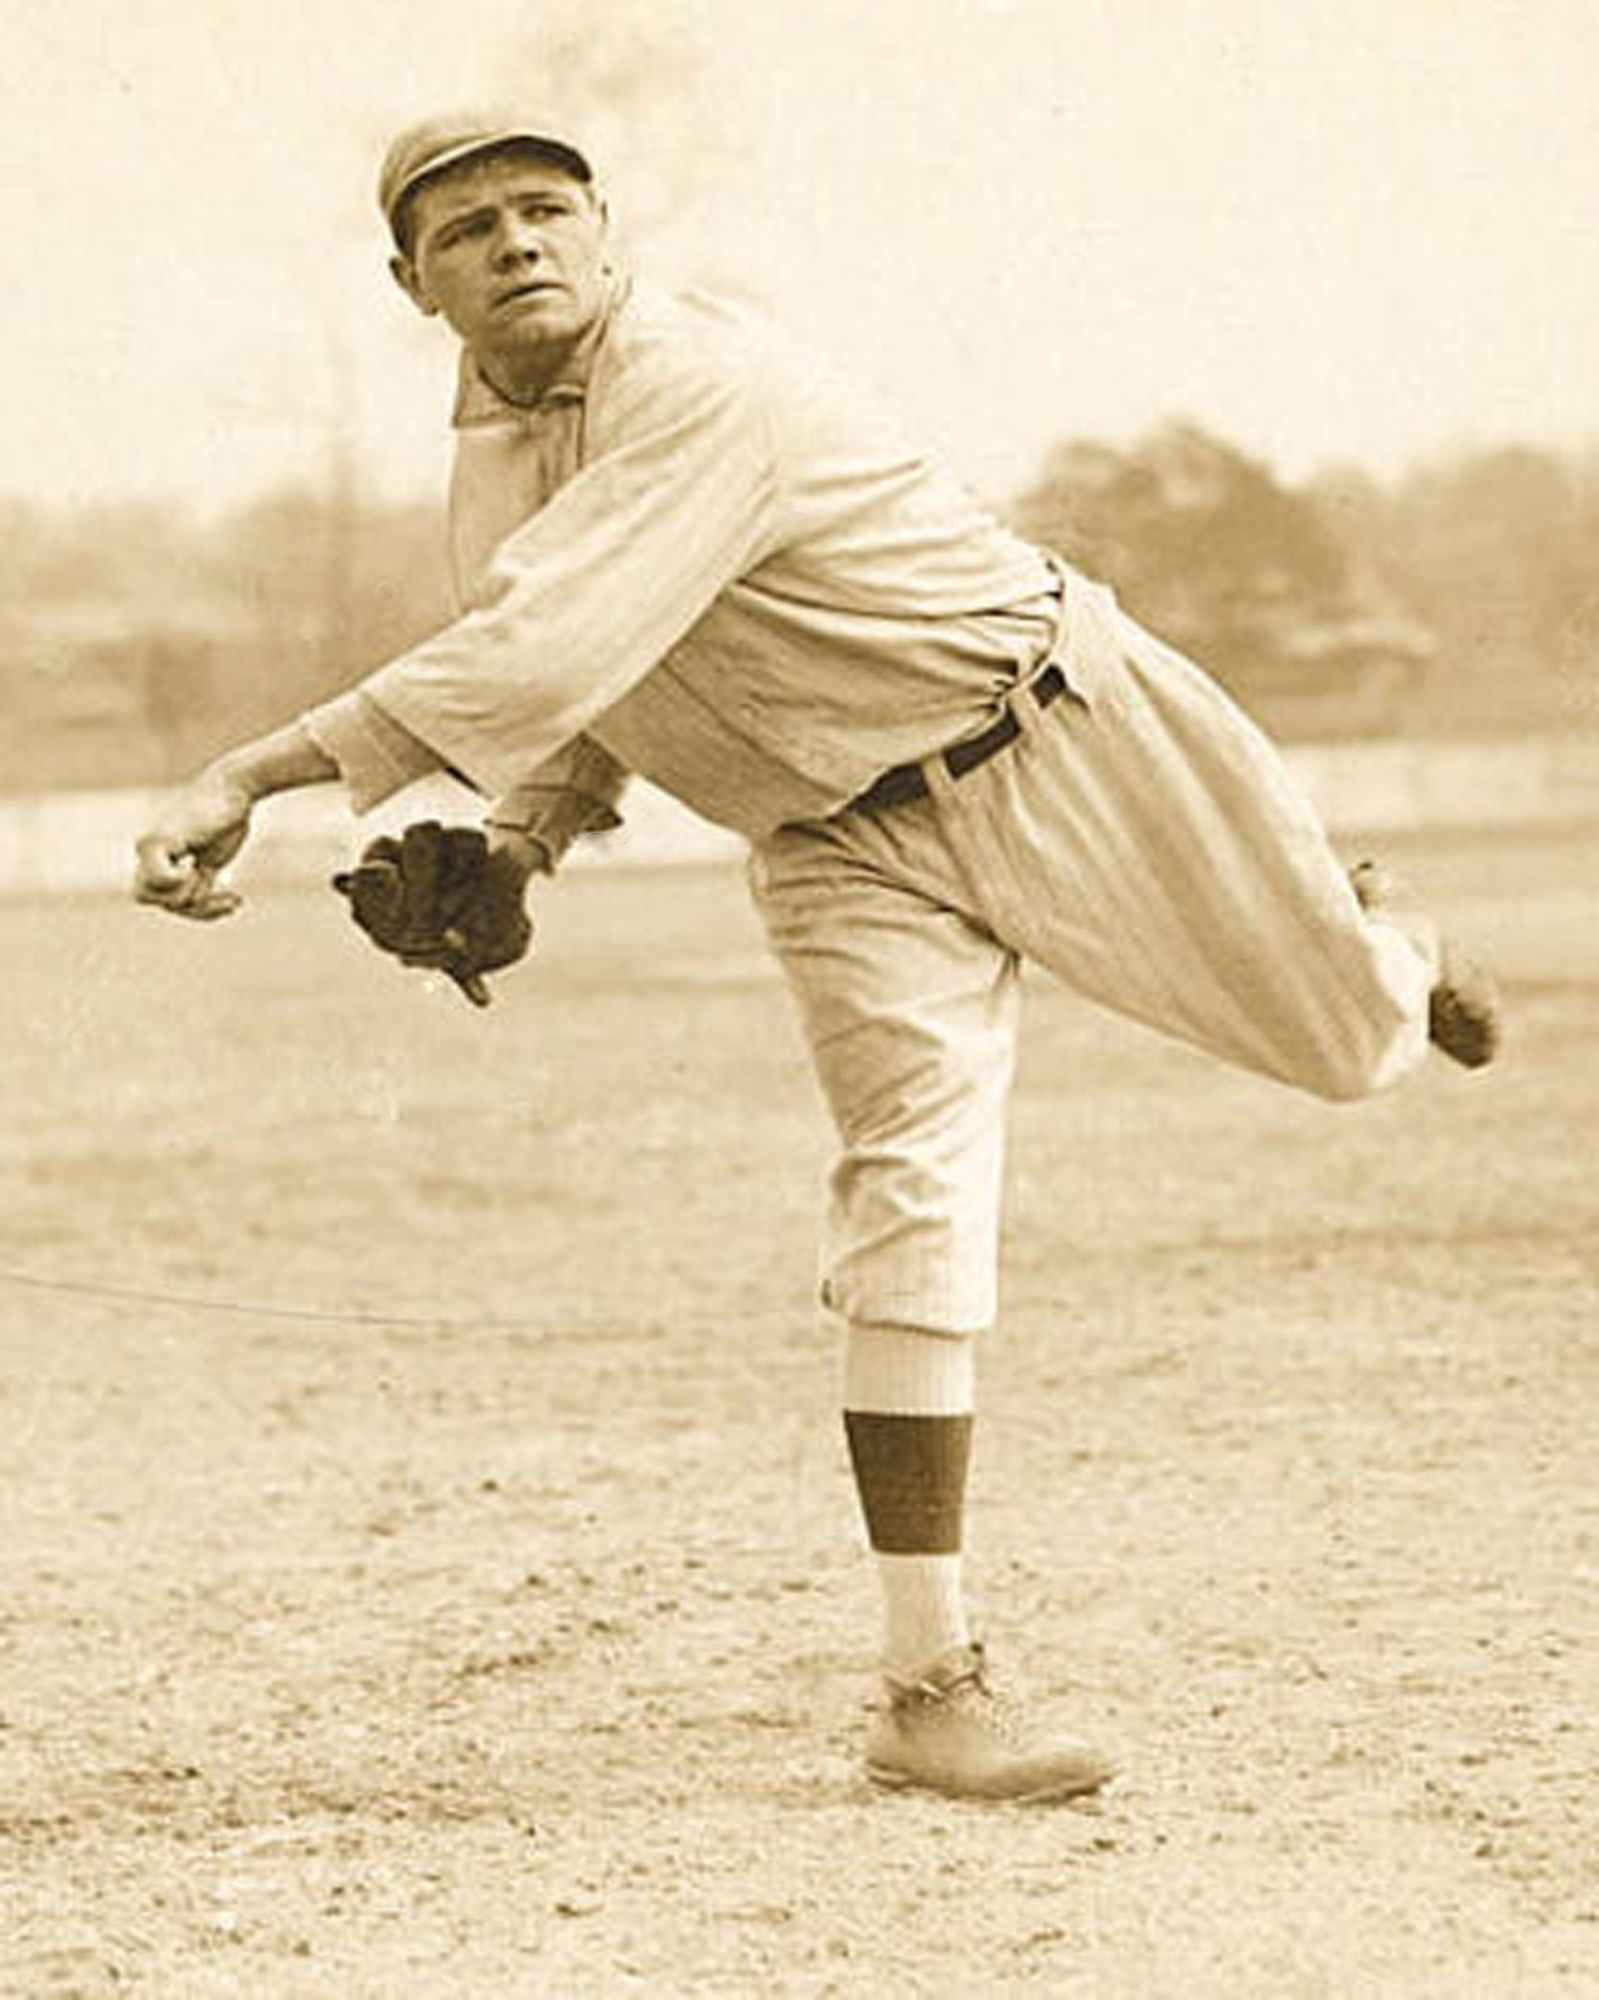 1915 Babe Ruth pitching